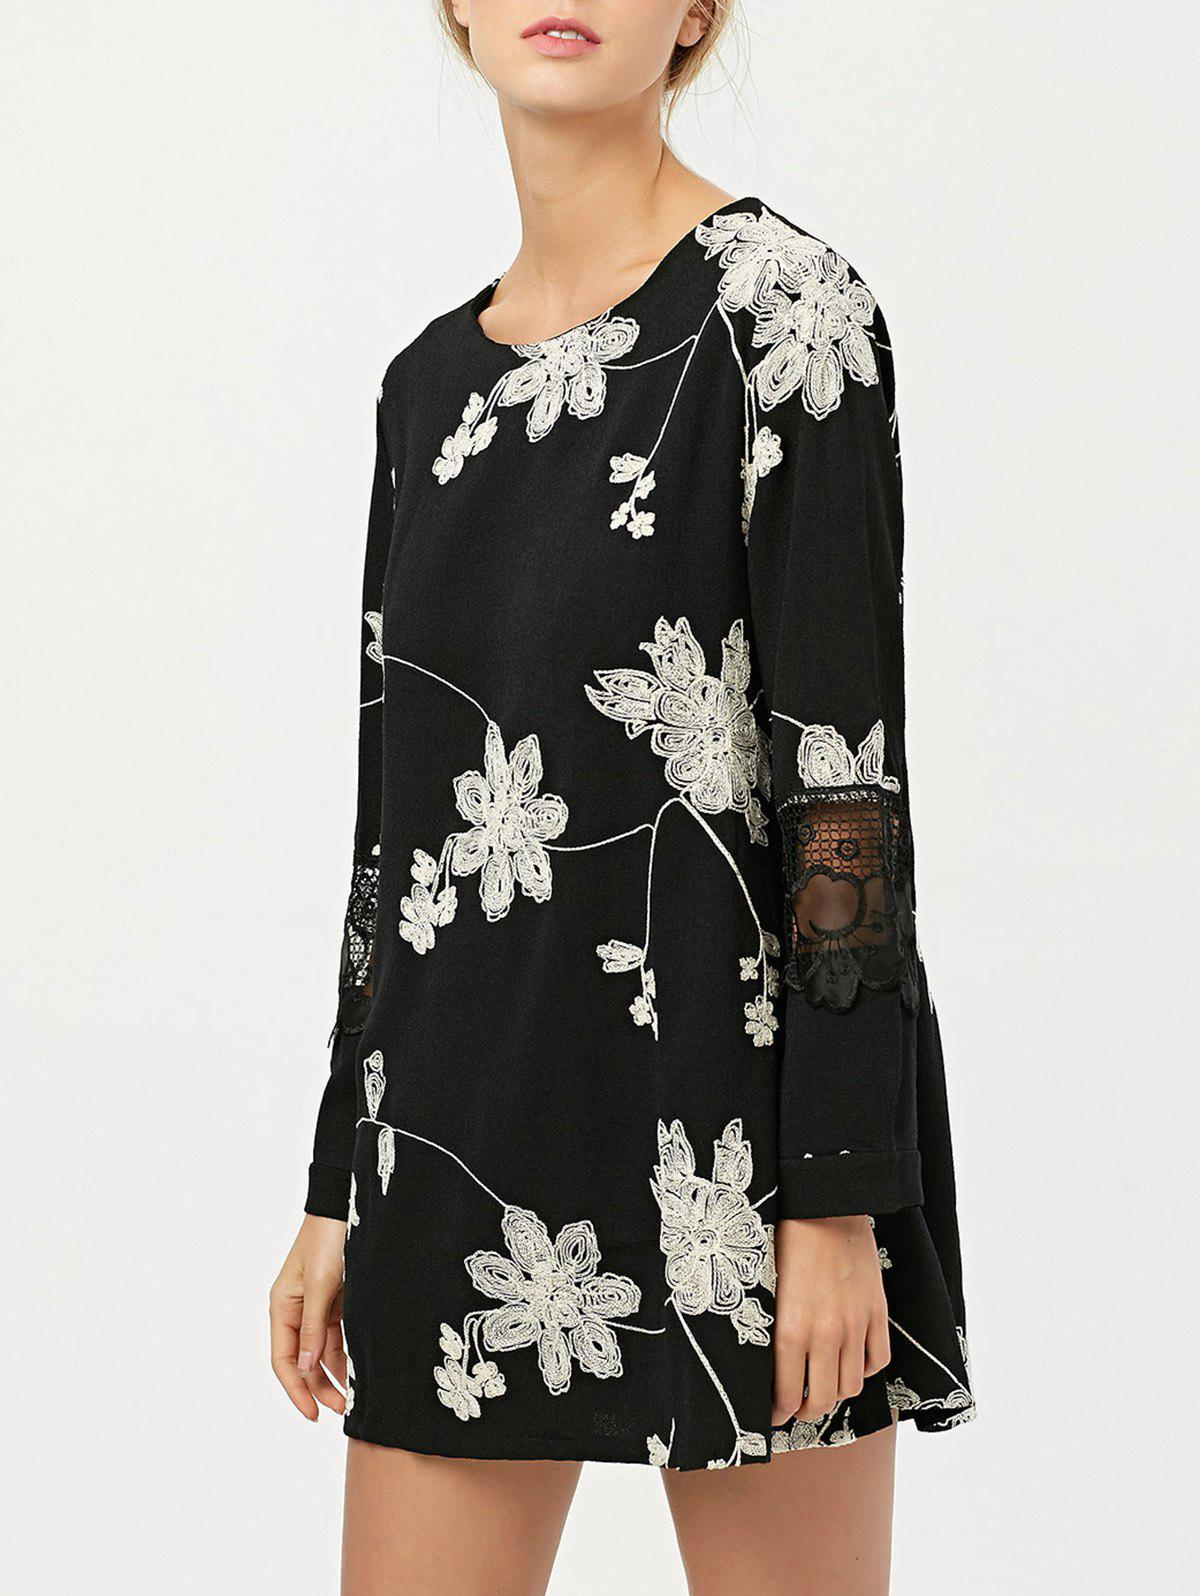 Floral Embroidered Lace Panel Short Chiffon Shift Dress with Sleeves floral embroidered short sleeve dress